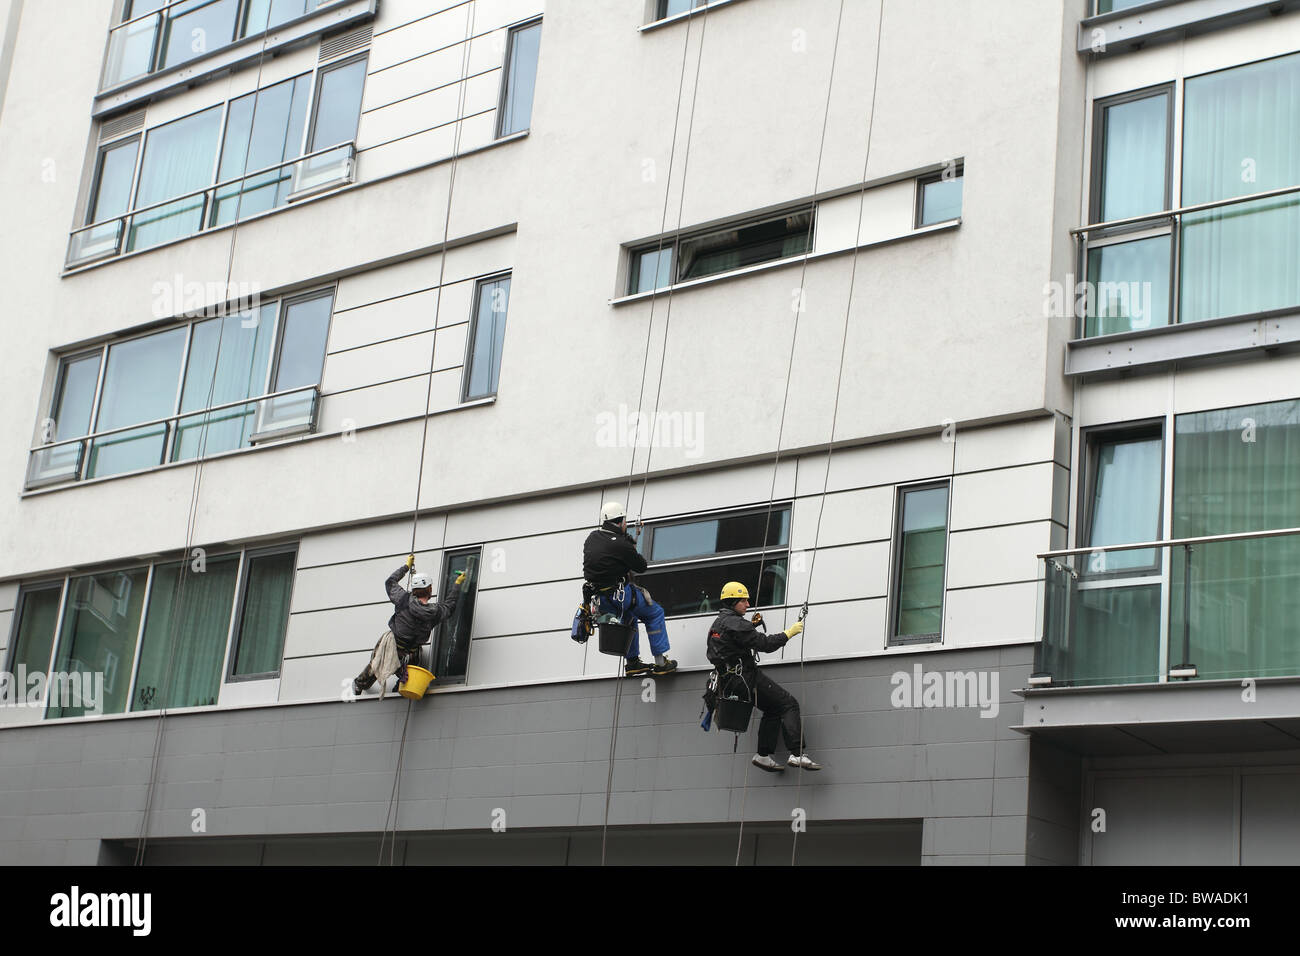 Abseiling window cleaners at work Stock Photo